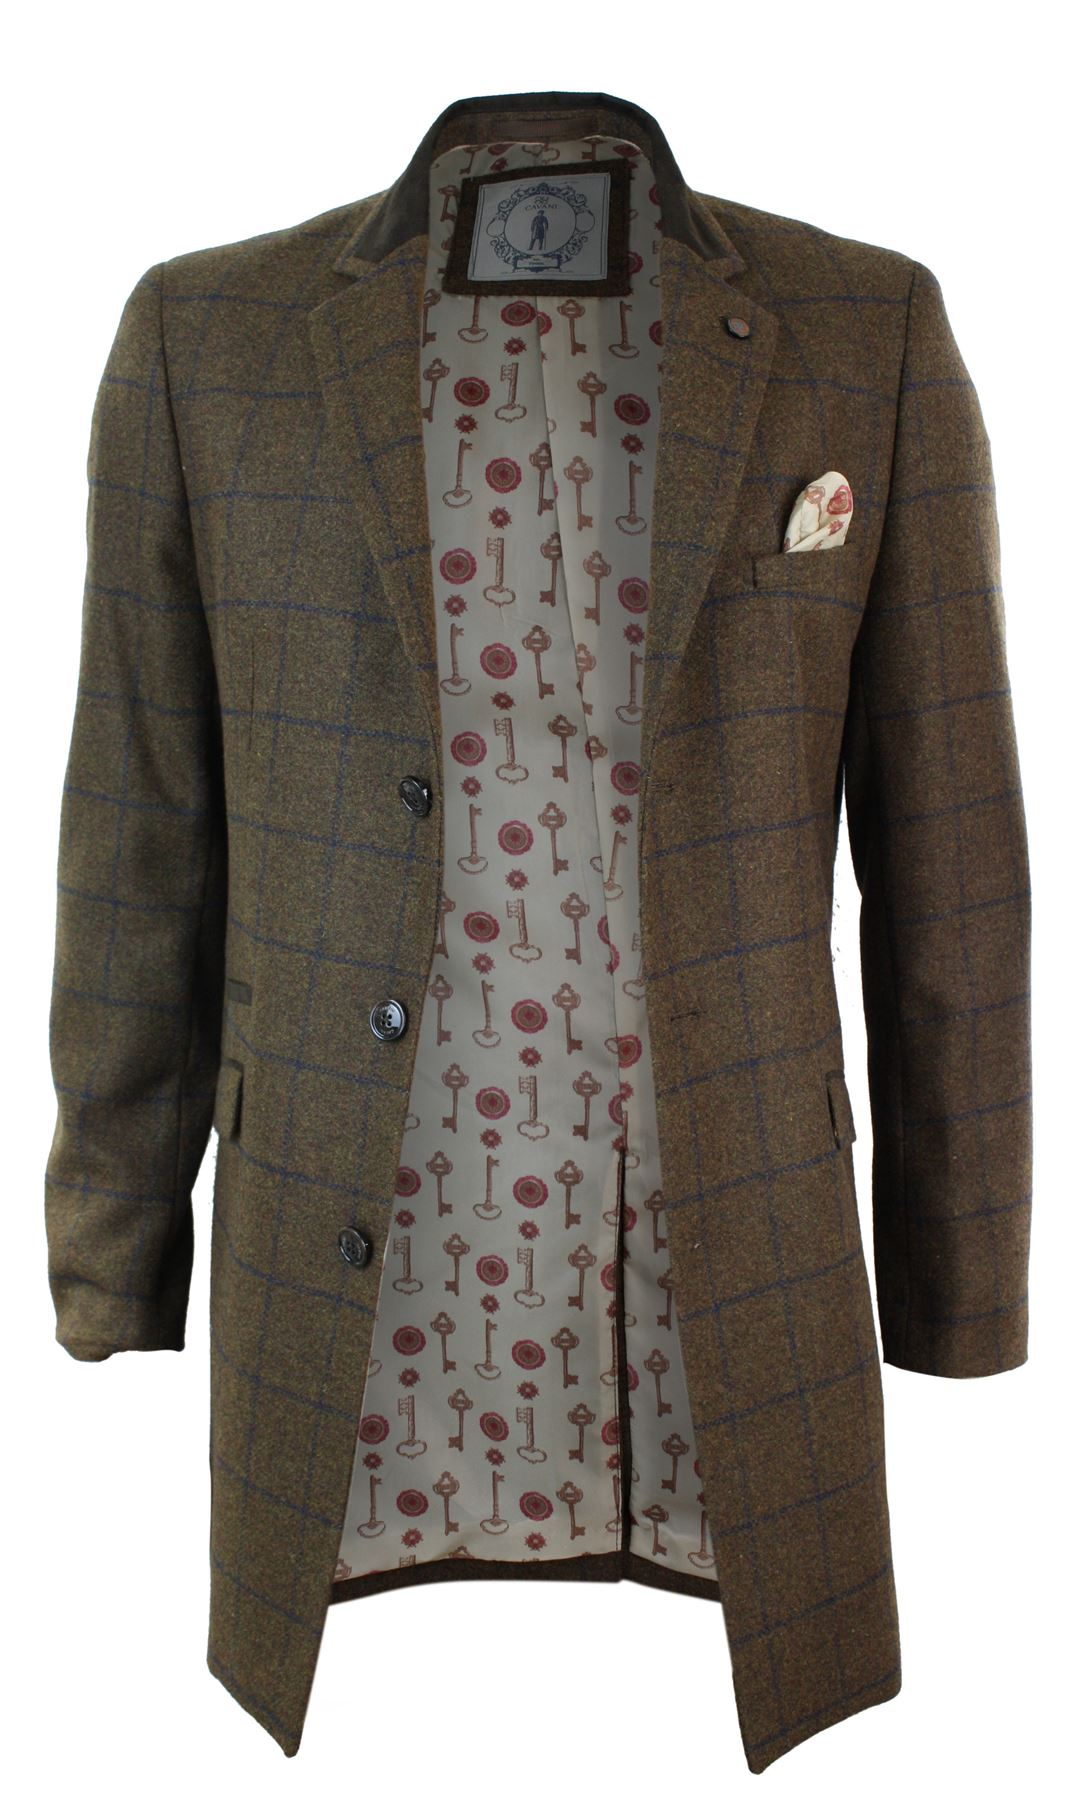 Shop eBay for great deals on Harris Tweed Wool Coats & Jackets for Men. You'll find new or used products in Harris Tweed Wool Coats & Jackets for Men on eBay. Free shipping on selected items.